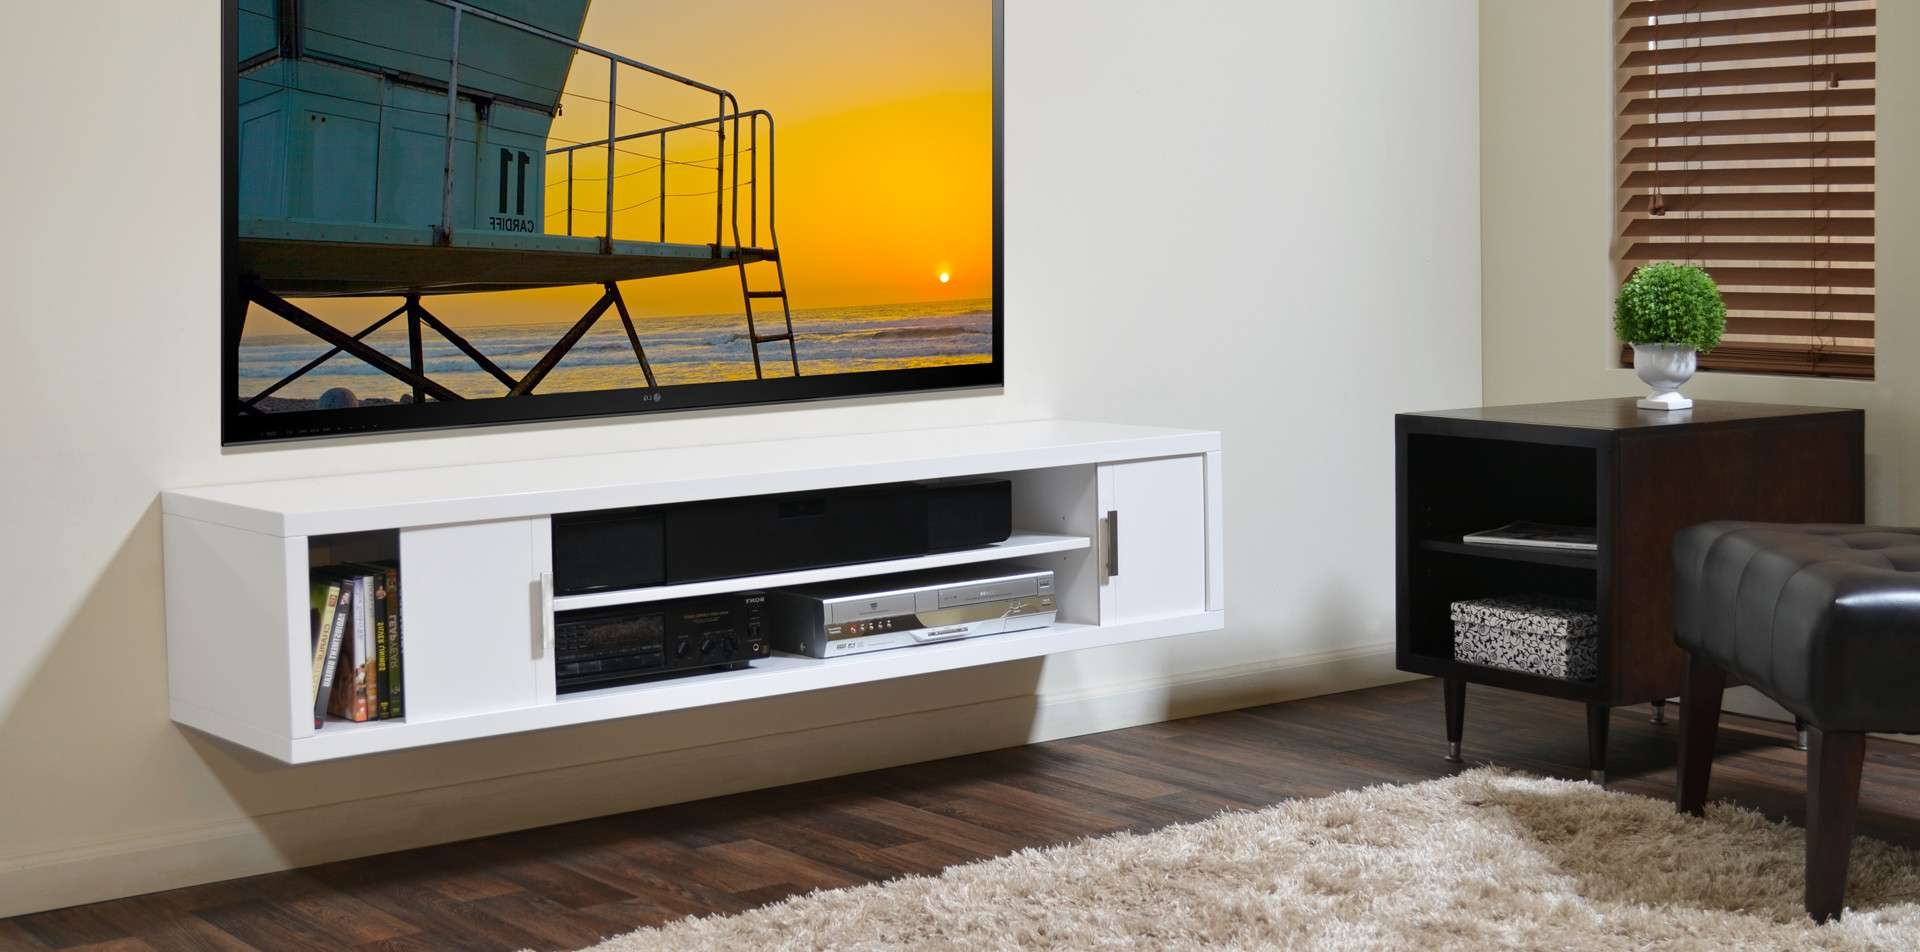 Long Wood Wall Mounted Media Shelf And Cabinet Tv Stand – Decofurnish With Regard To White Wall Mounted Tv Stands (View 5 of 15)